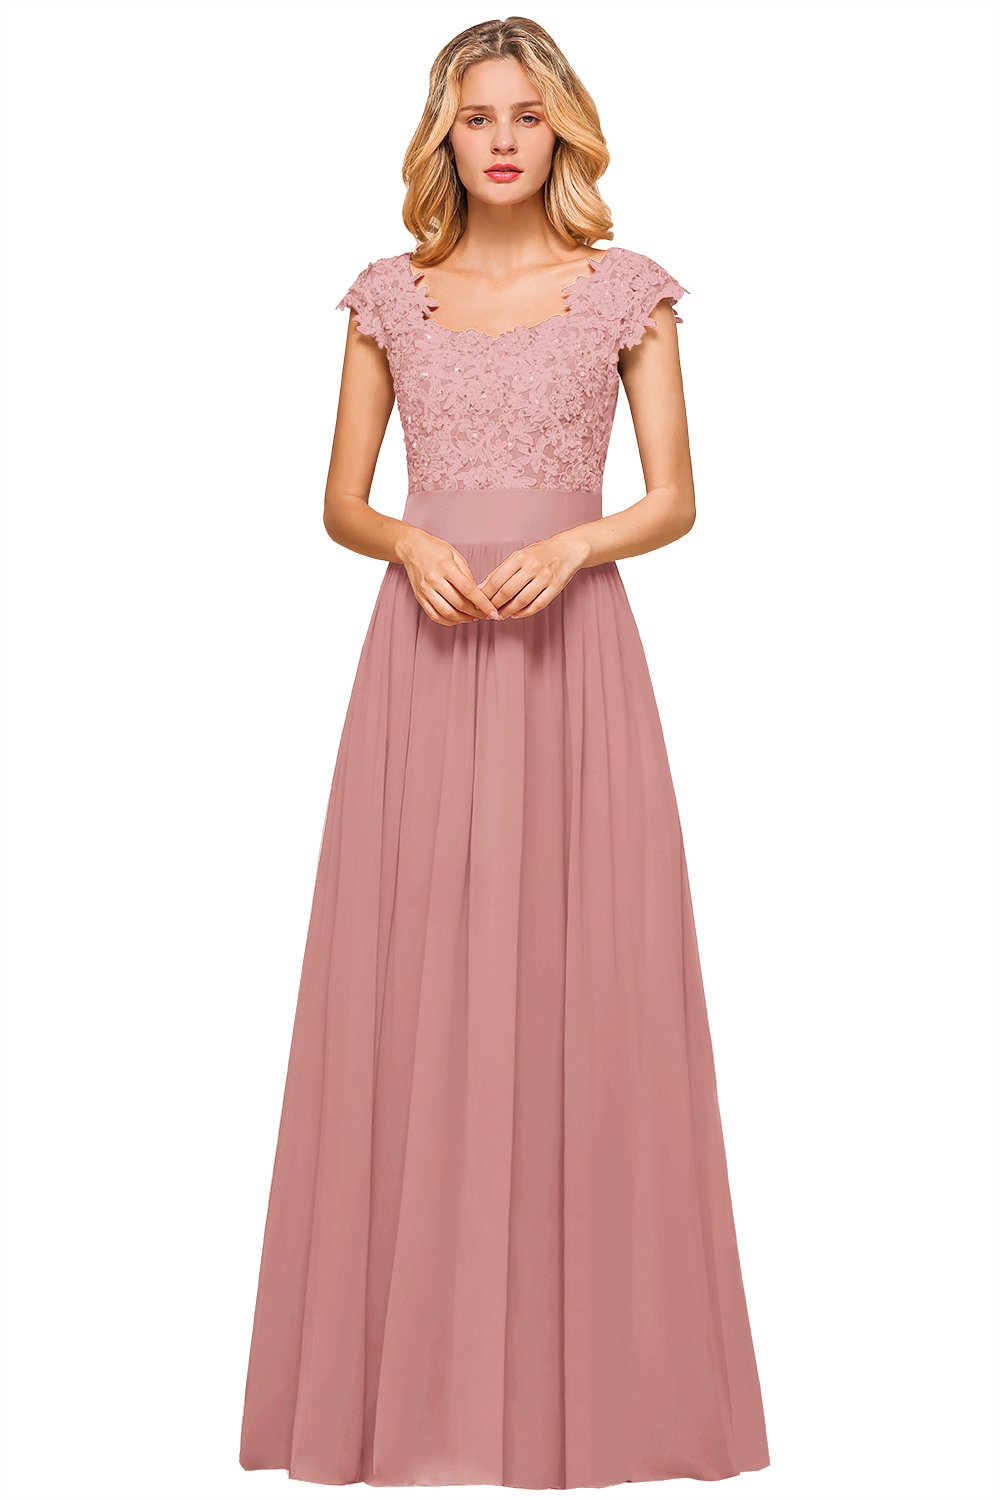 BMbridal Elegant Long Chiffon Prom Dress With Lace Appliques On Sale